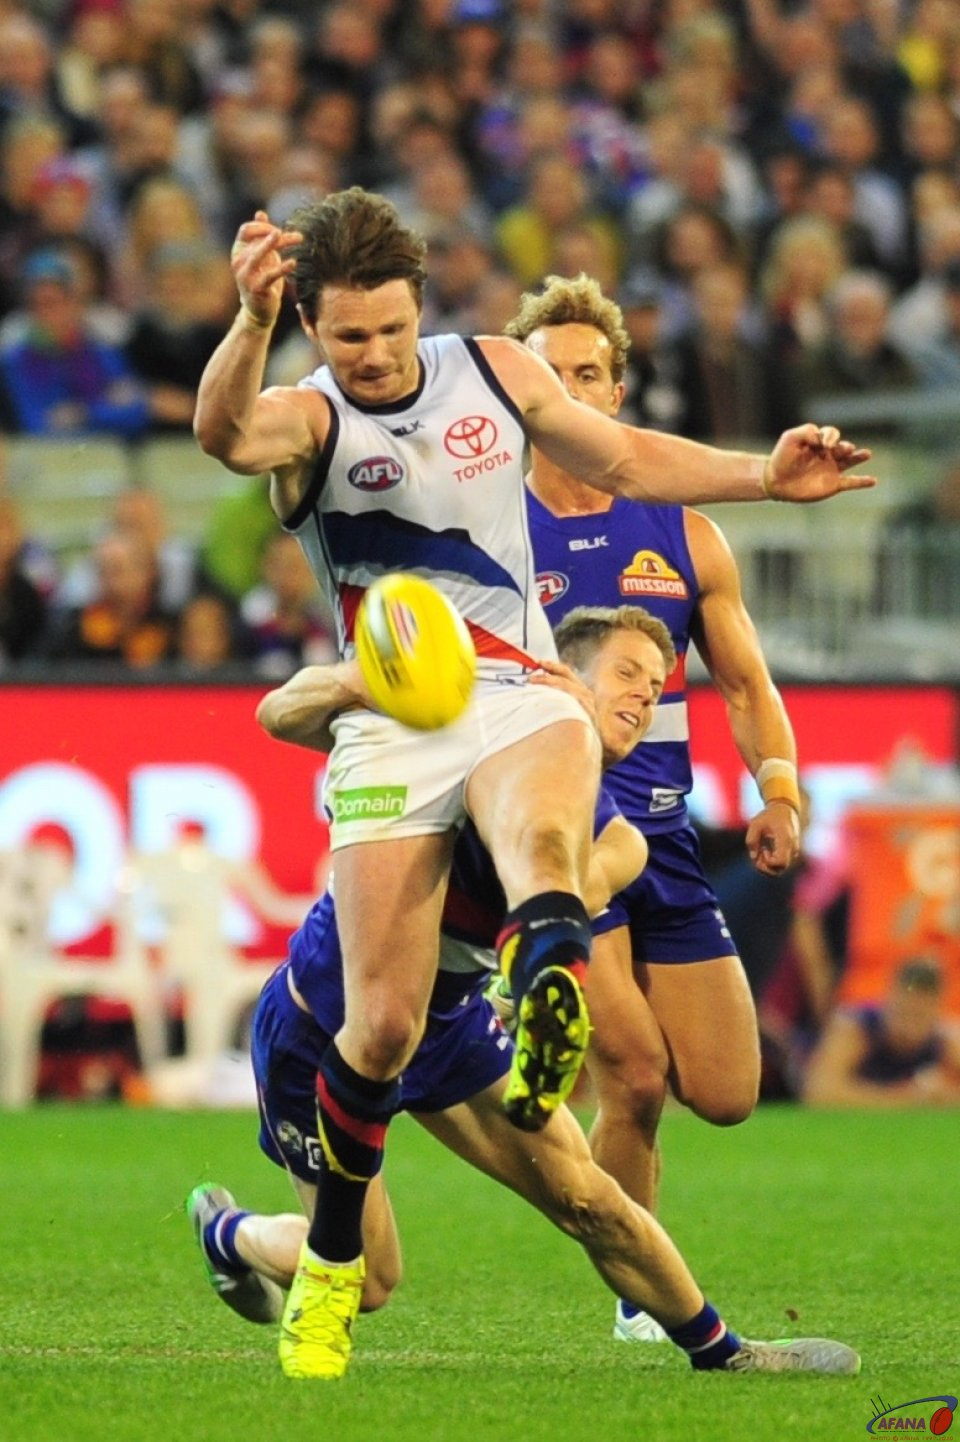 Dangerfield clears under pressure